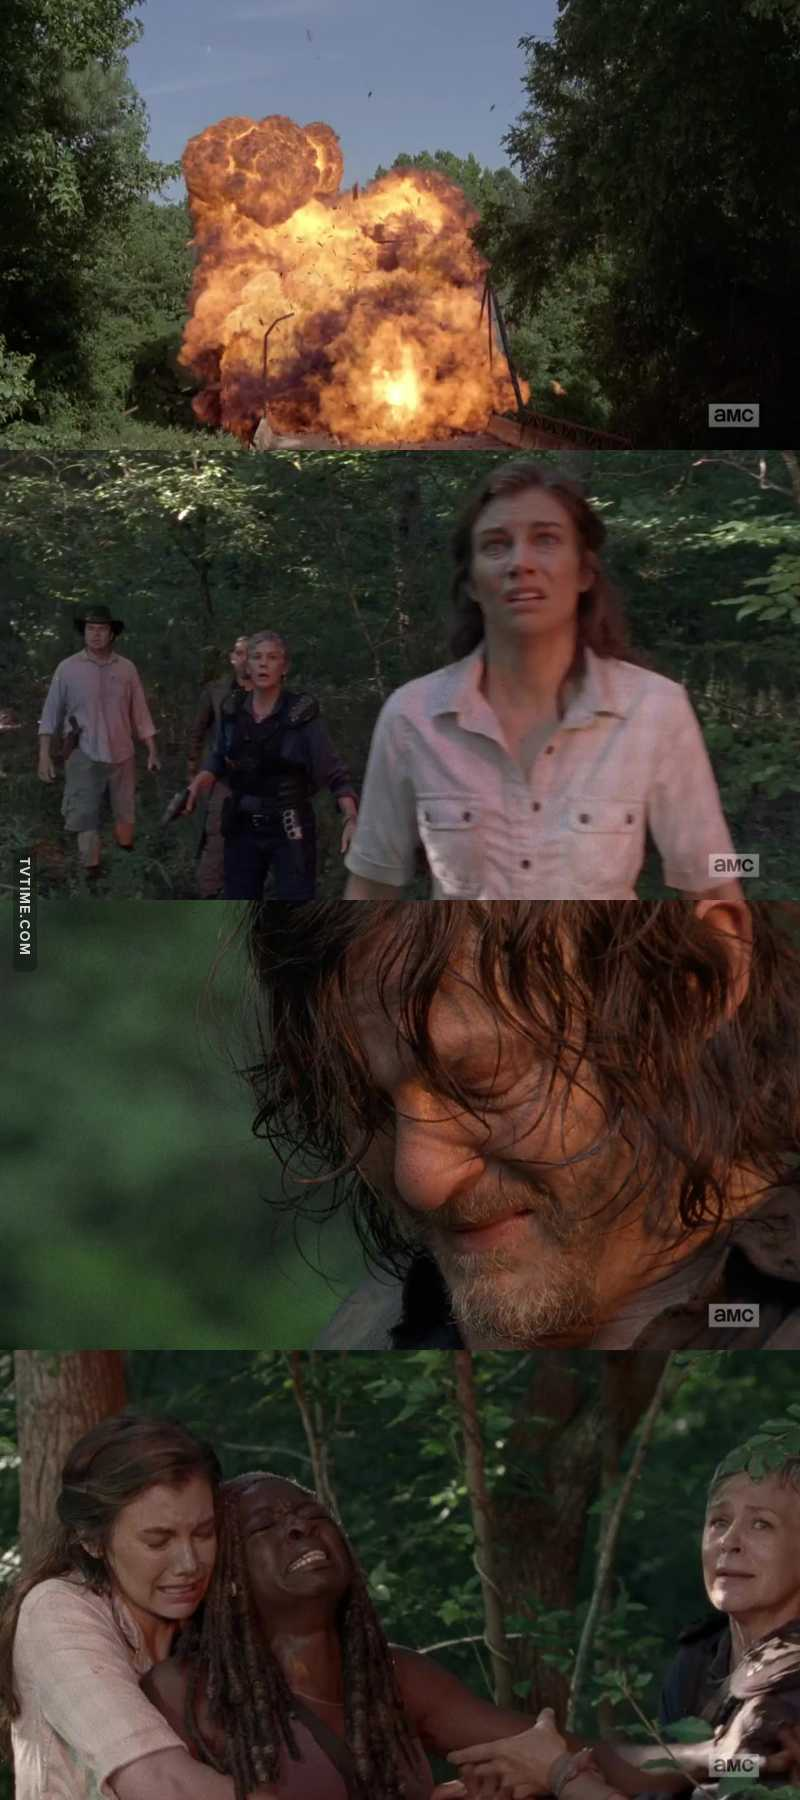 The moment Daryl, Michonne, Maggie and Carol realized they lost Rick forever 💔